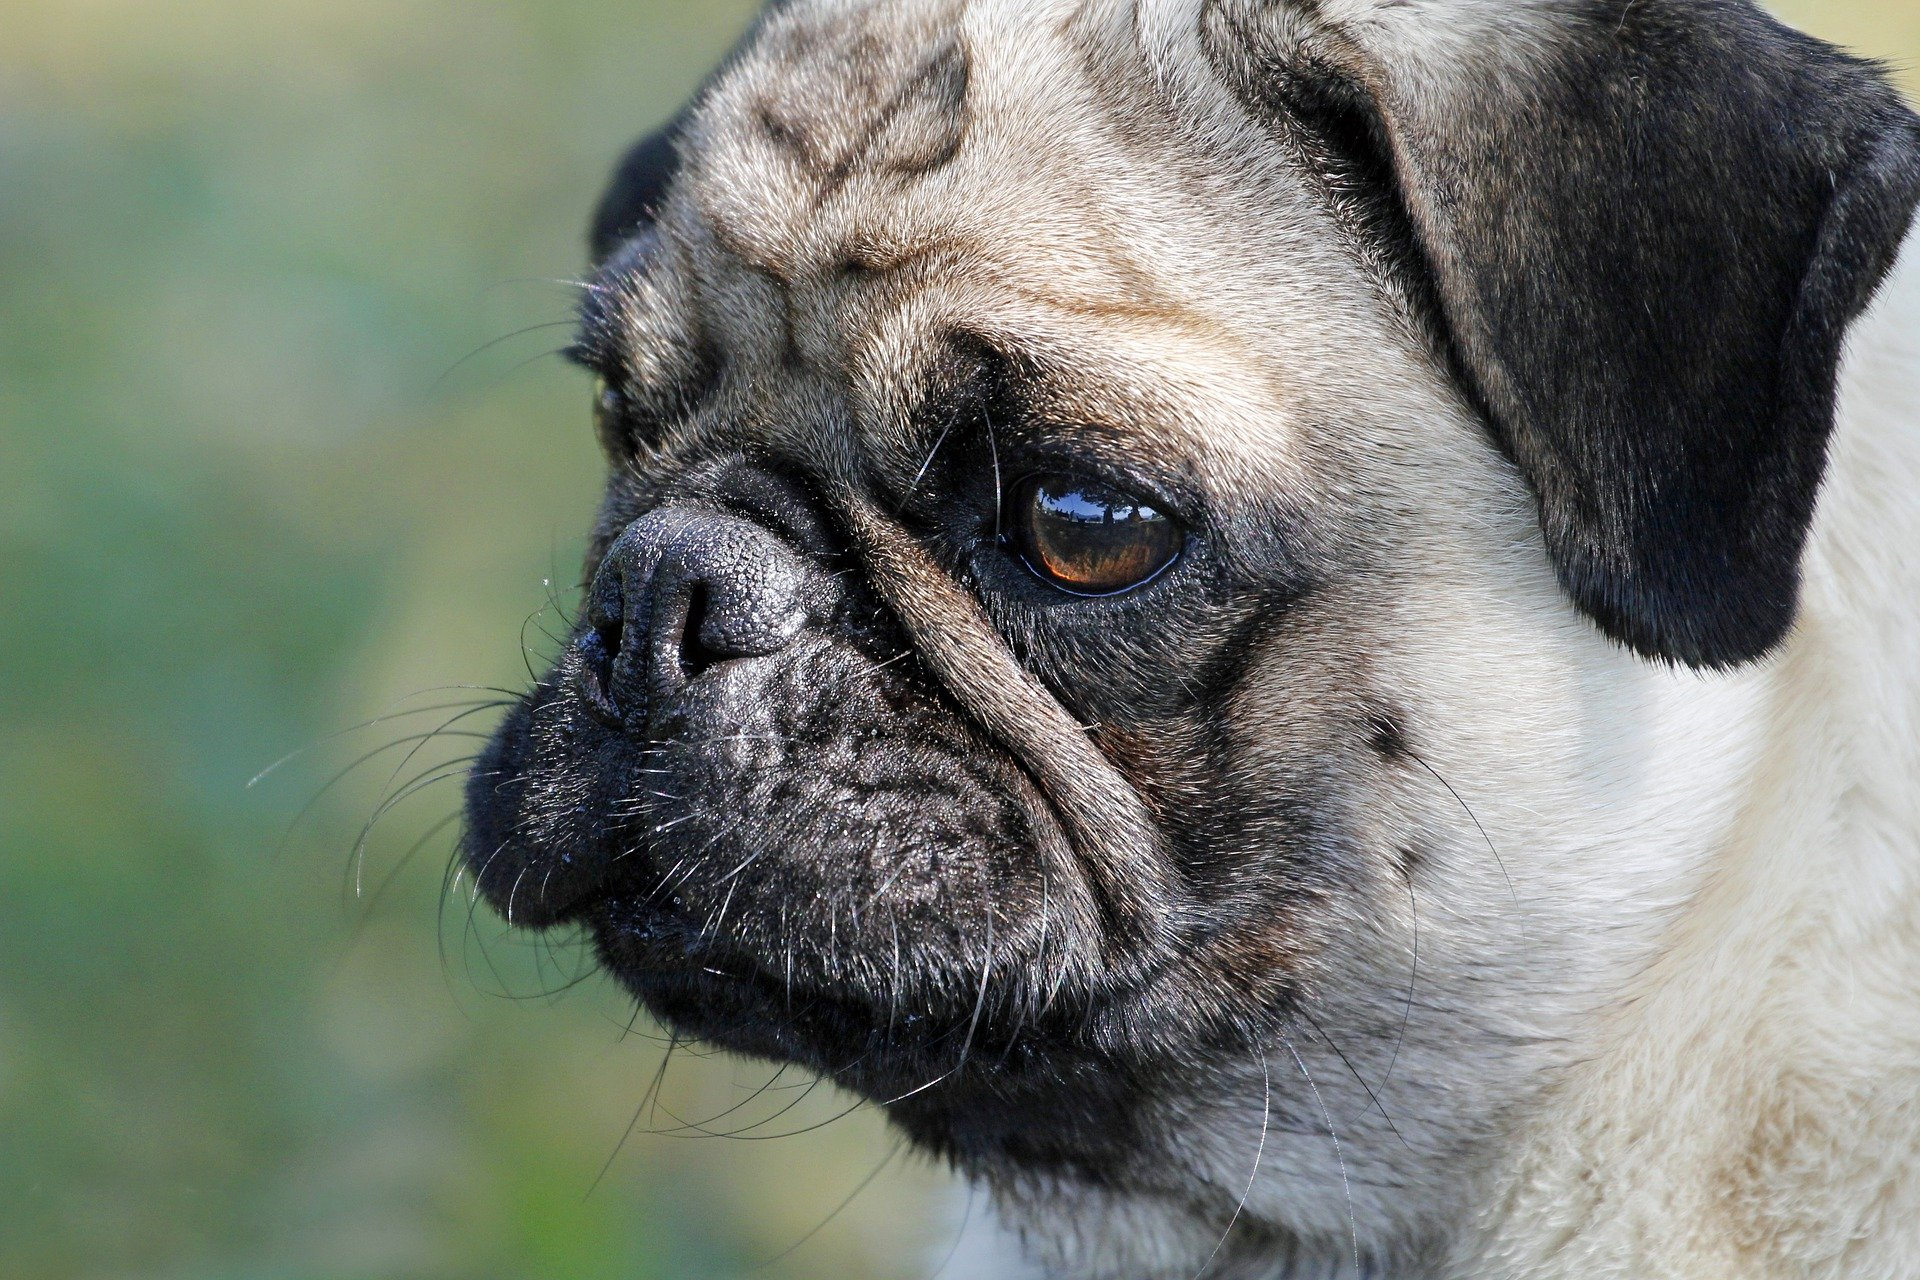 Dog disease: Colds in Dogs Symptoms and Treatment